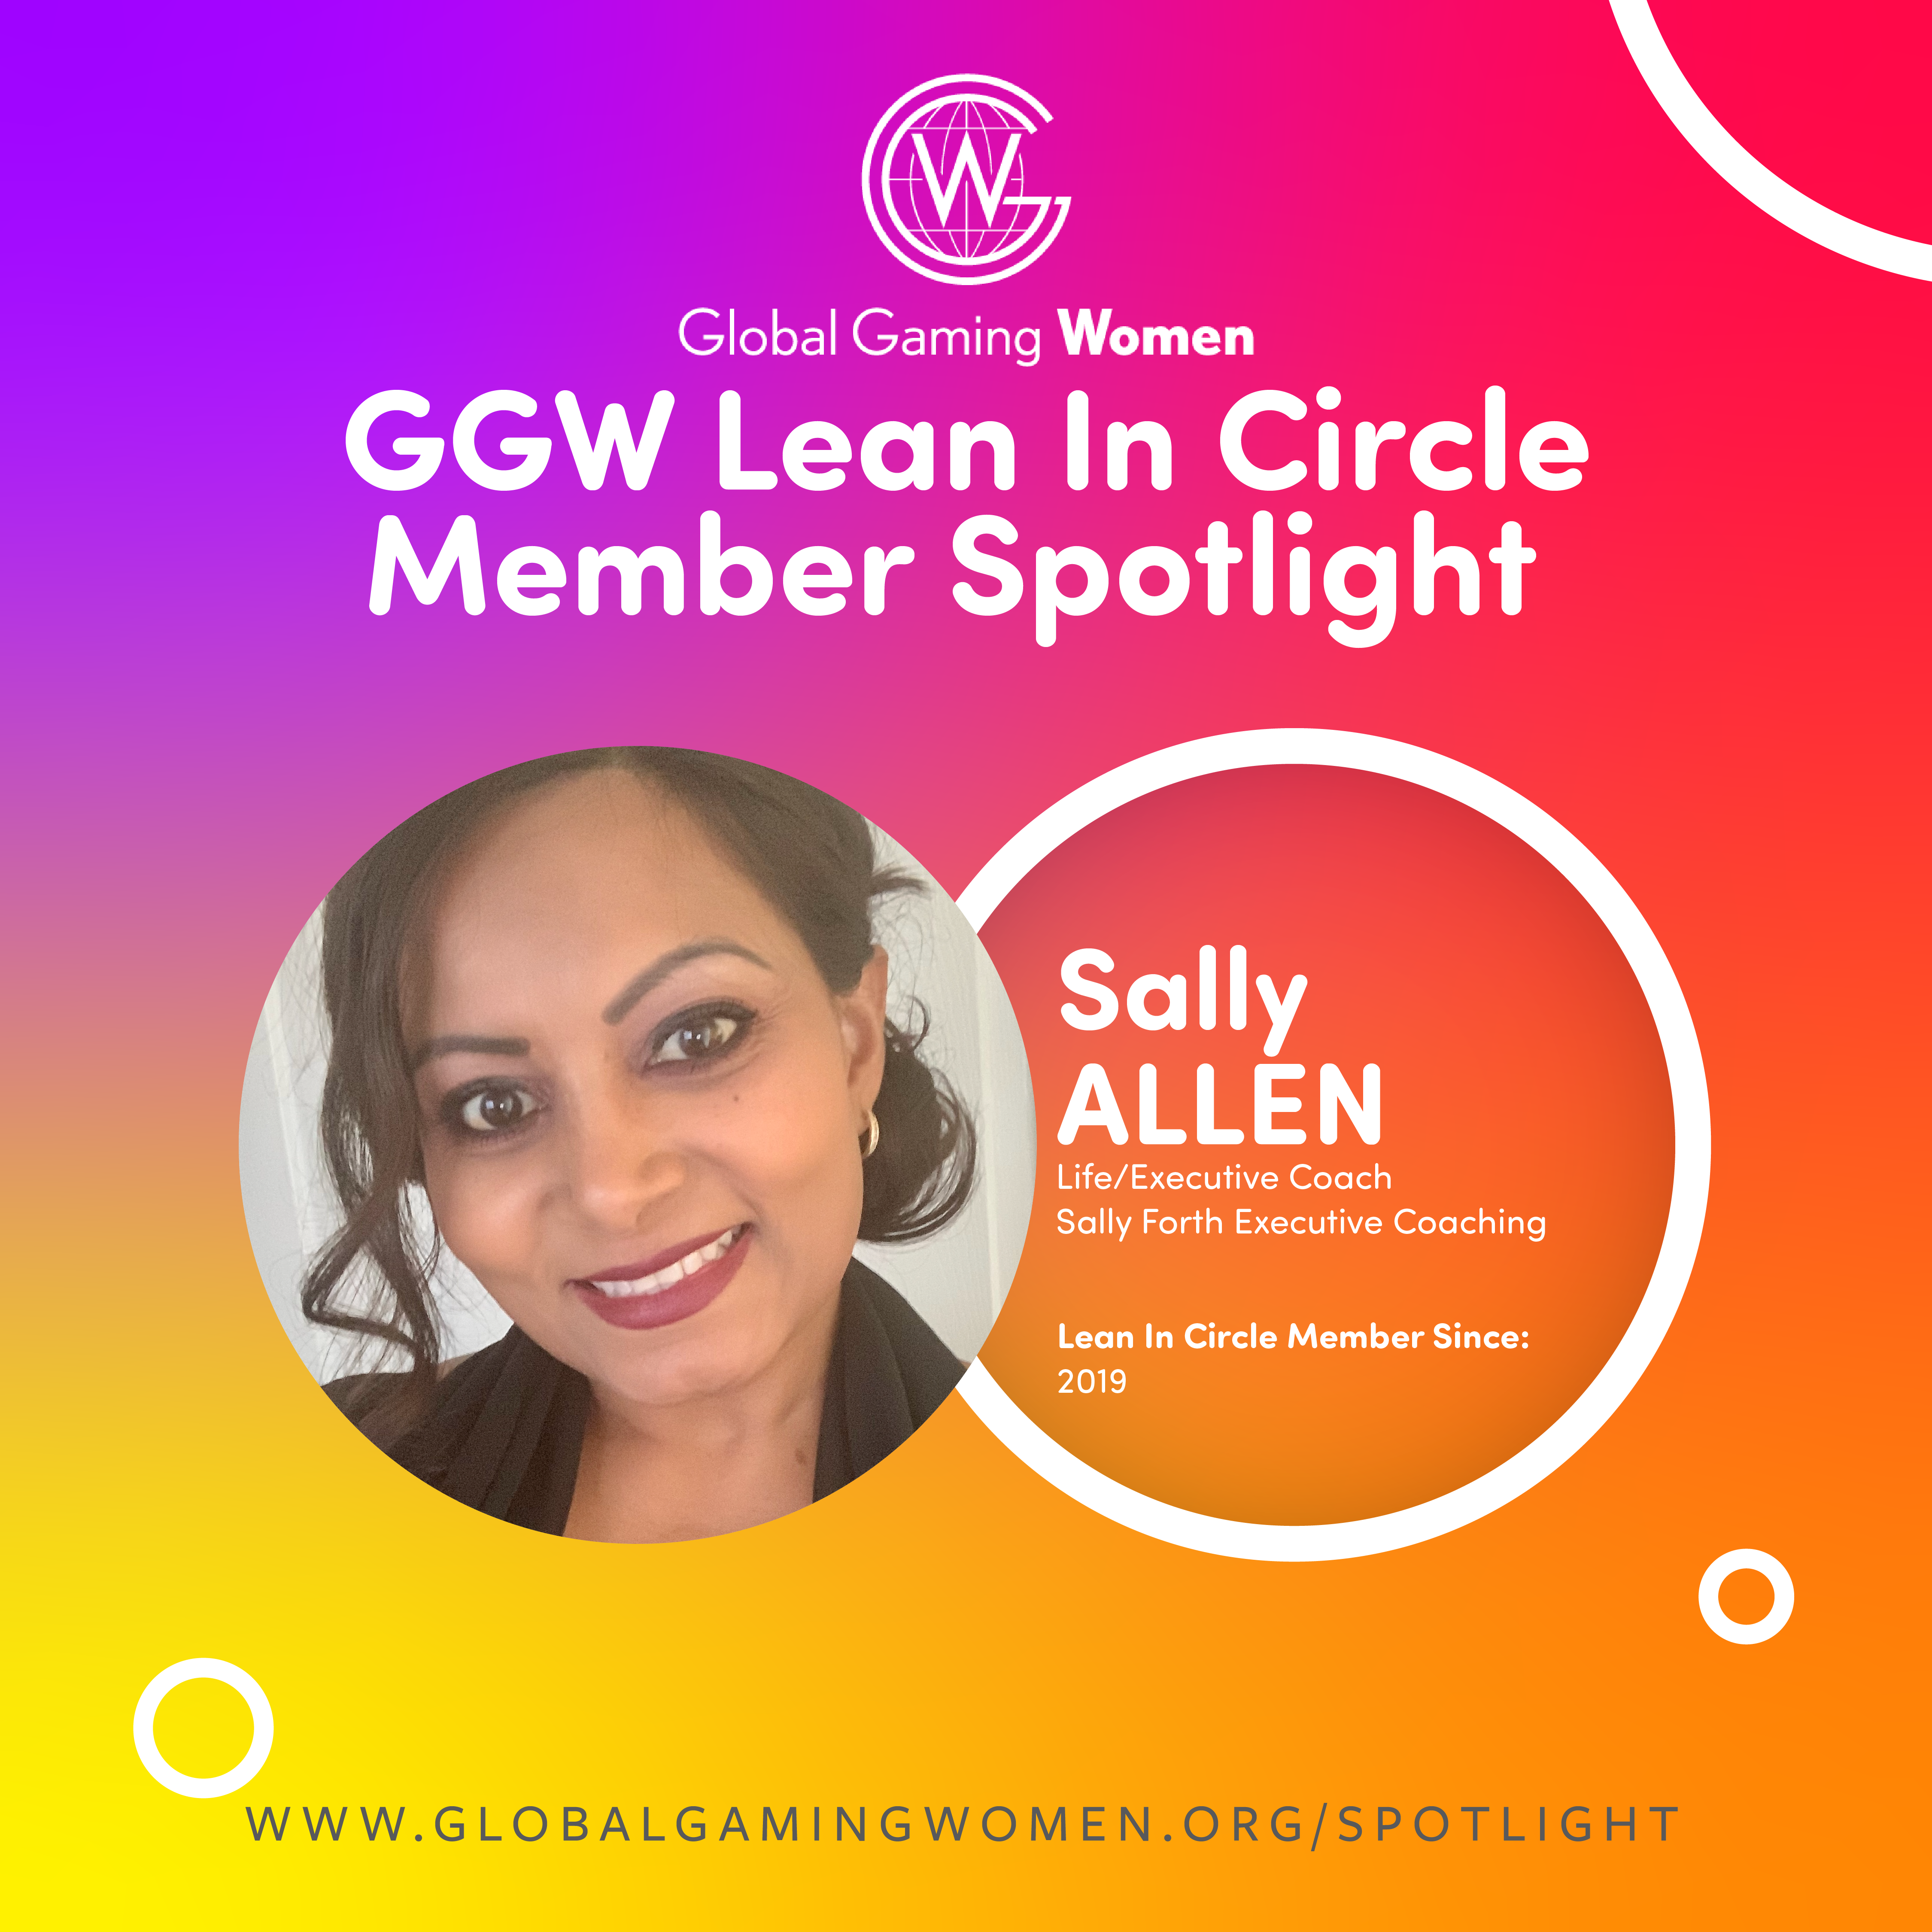 Member Spotlight: Sally Allen